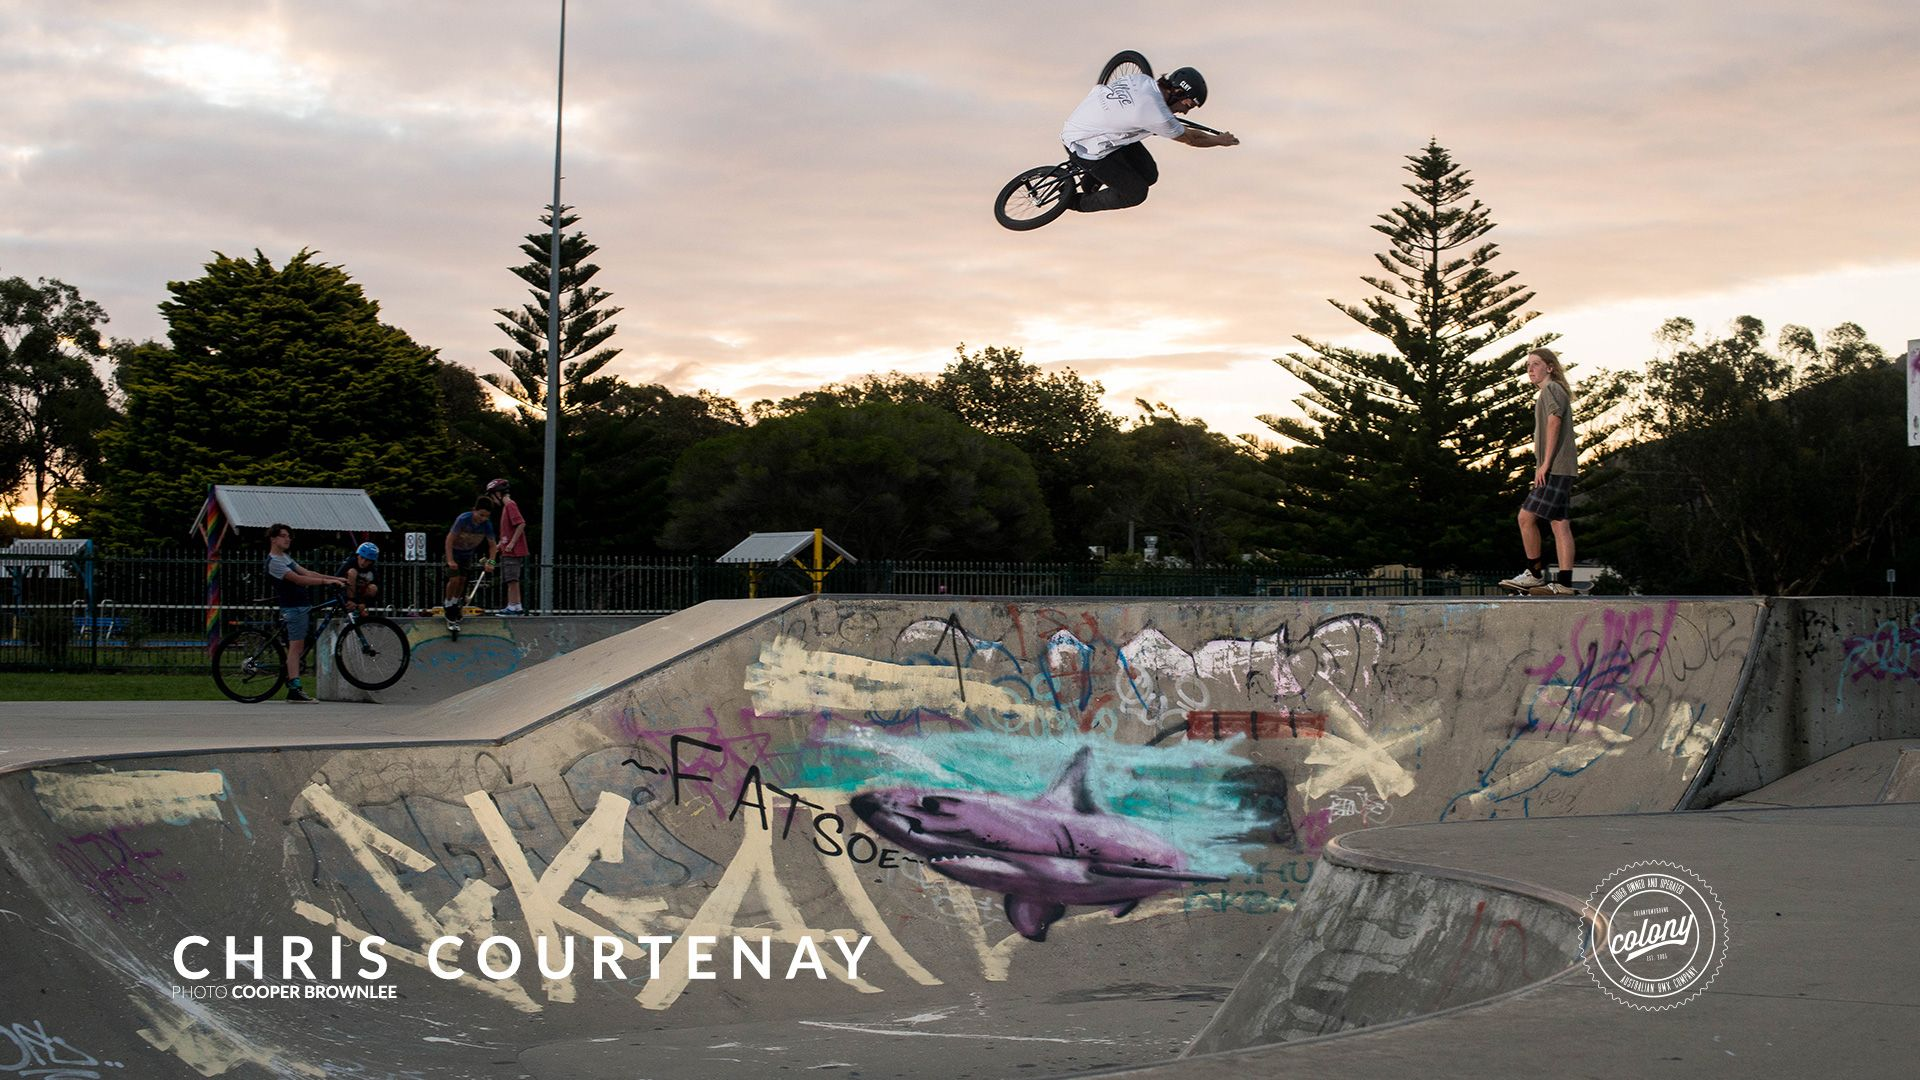 Colony bmx wallpapers archives colony bmx hd wallpapers colony bmx wallpapers archives colony bmx voltagebd Choice Image